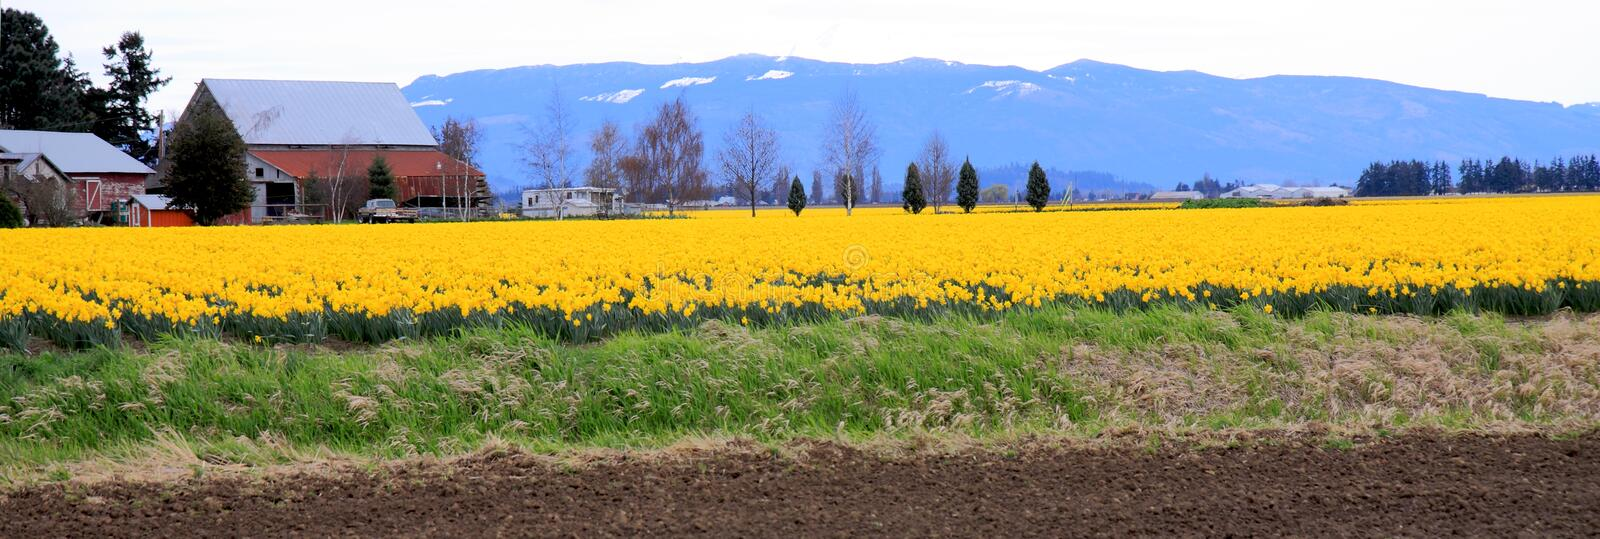 Daffodil Farm. Bright yellow field of daffodils surrounded by green acres in rural Skagit Valley royalty free stock photo